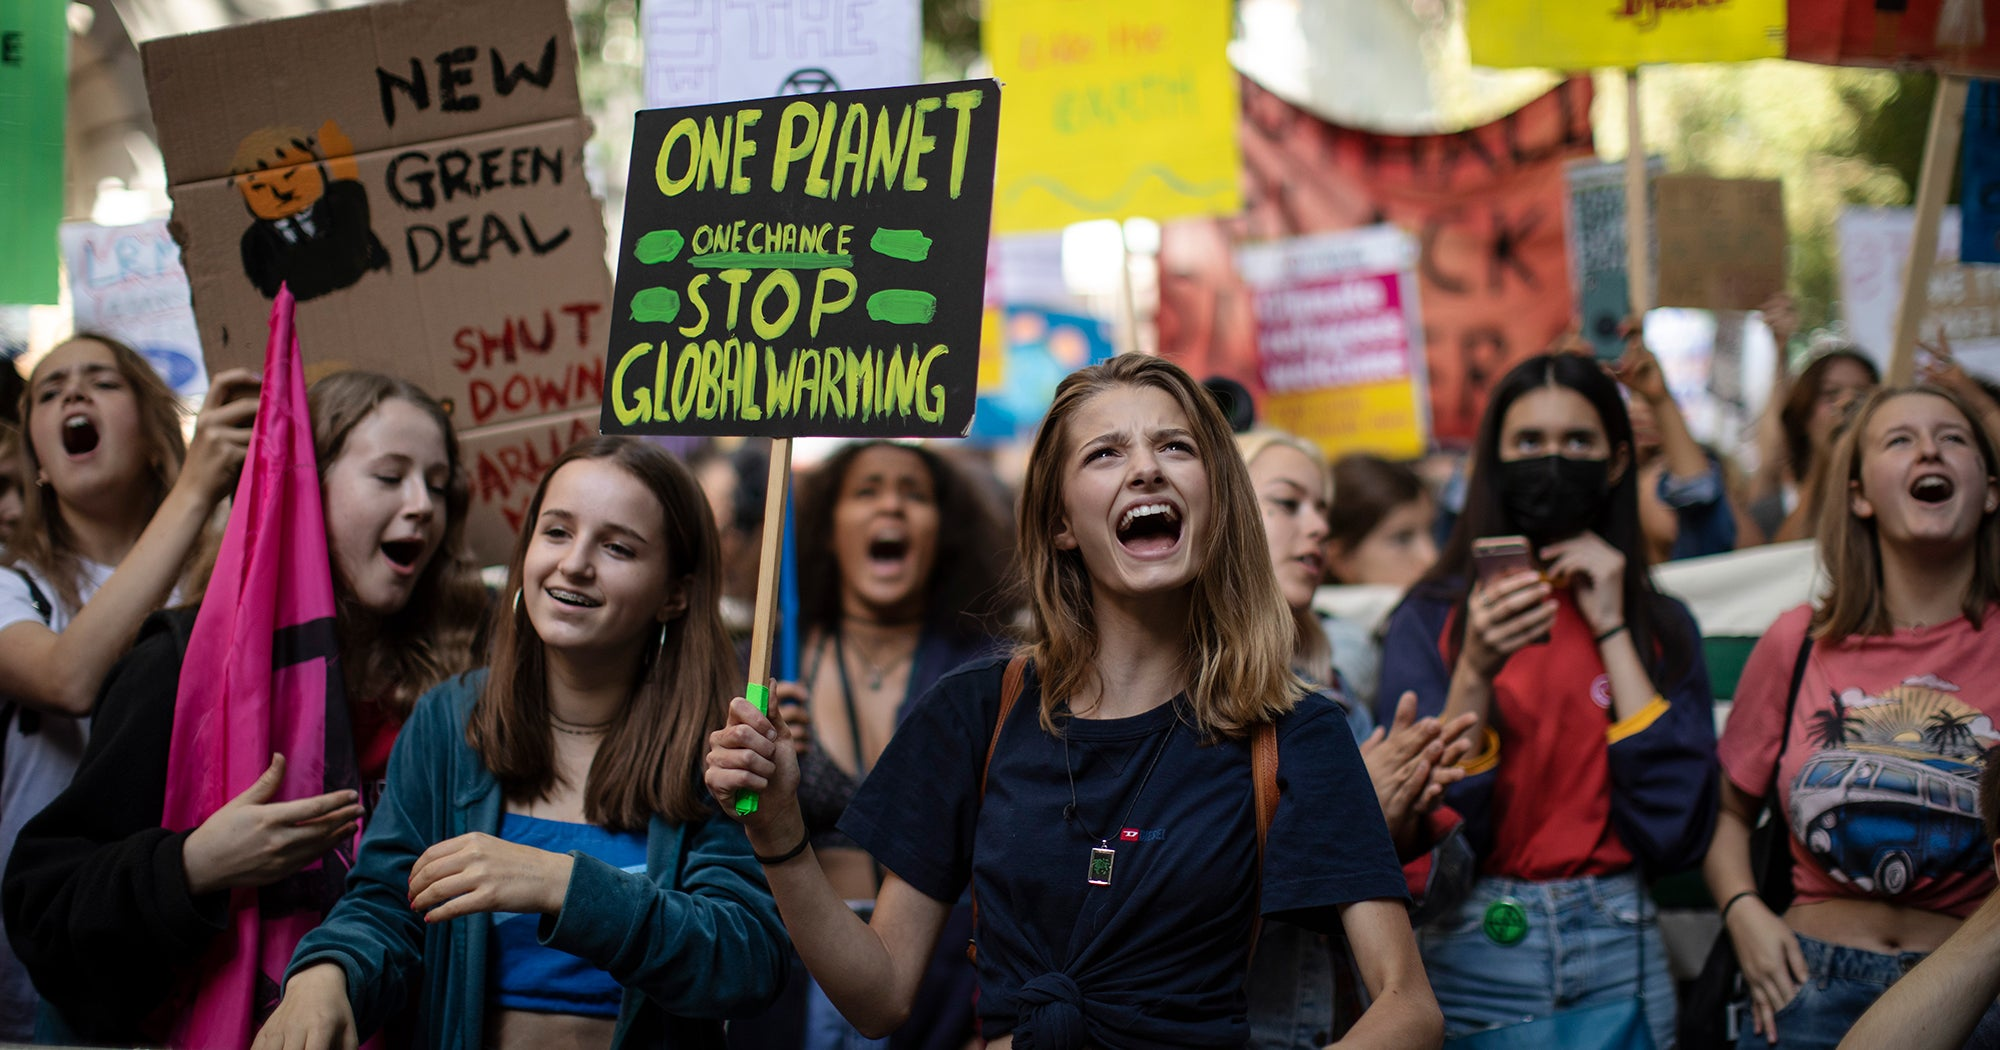 The Best Protest Signs From The 2019 Global Climate Change Strikes